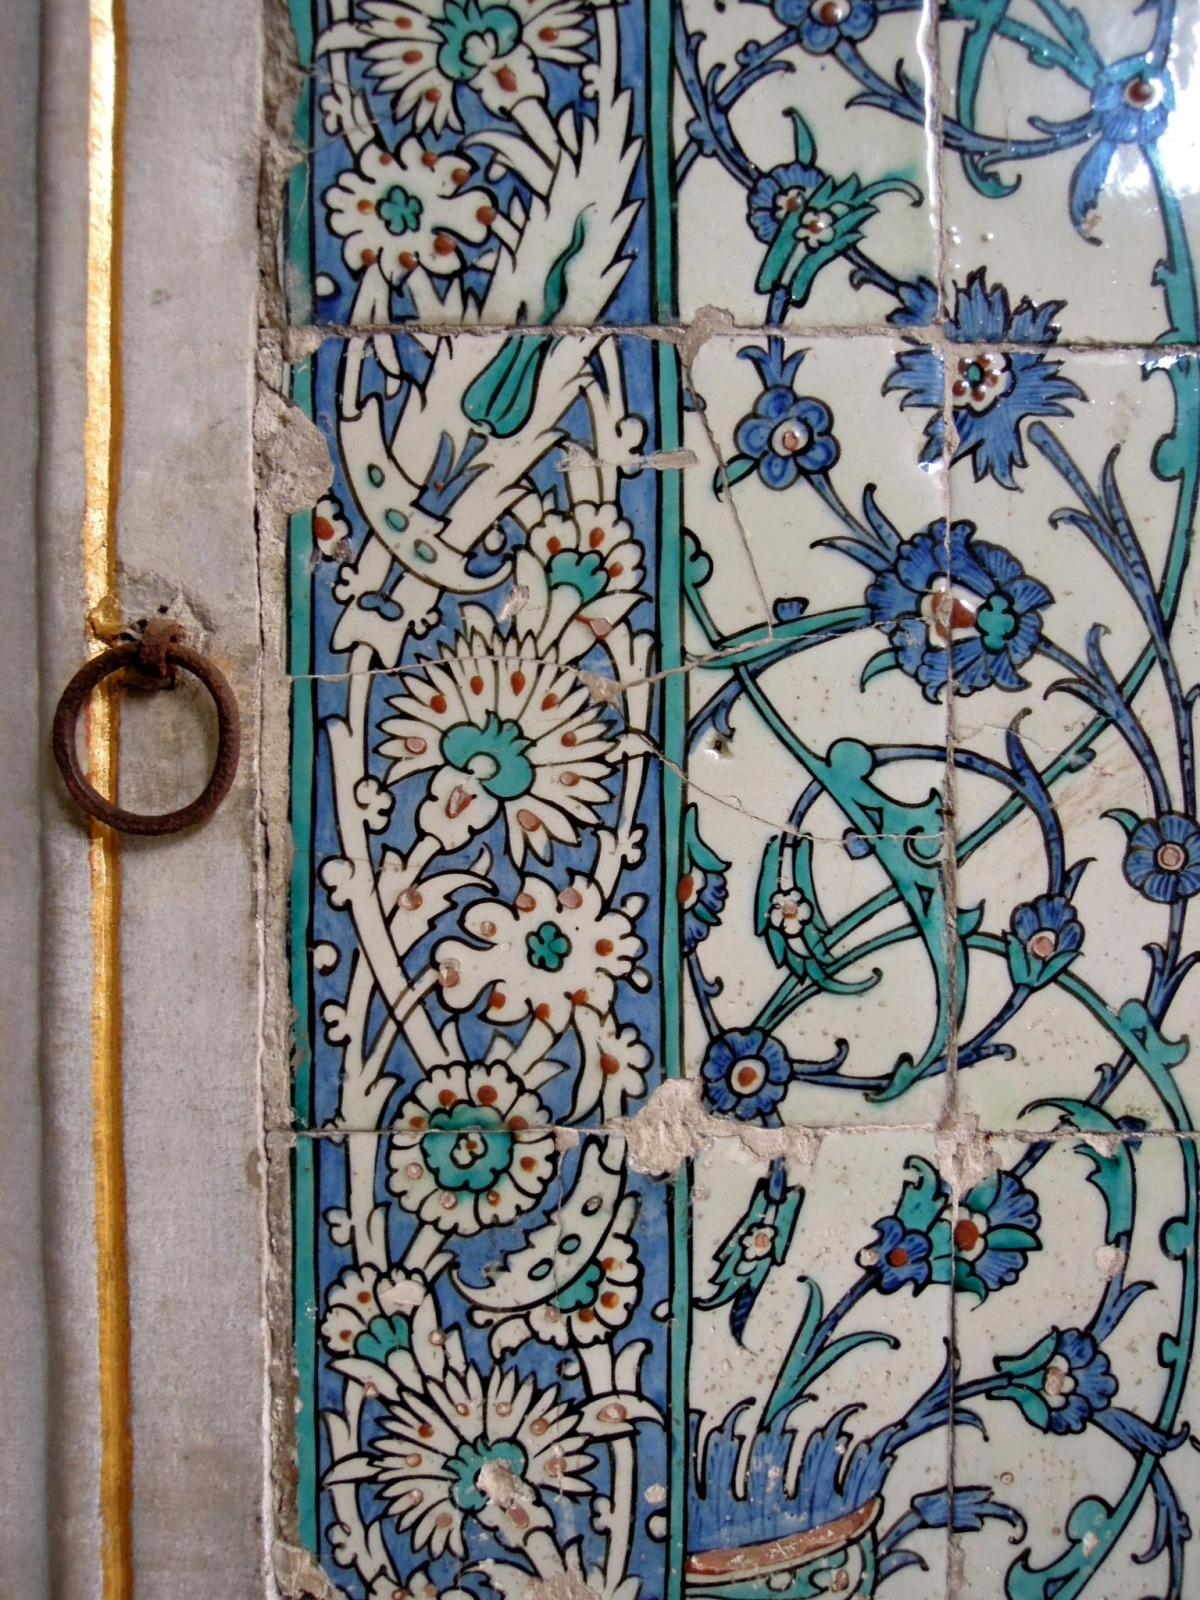 Tiles with blue floral pattern